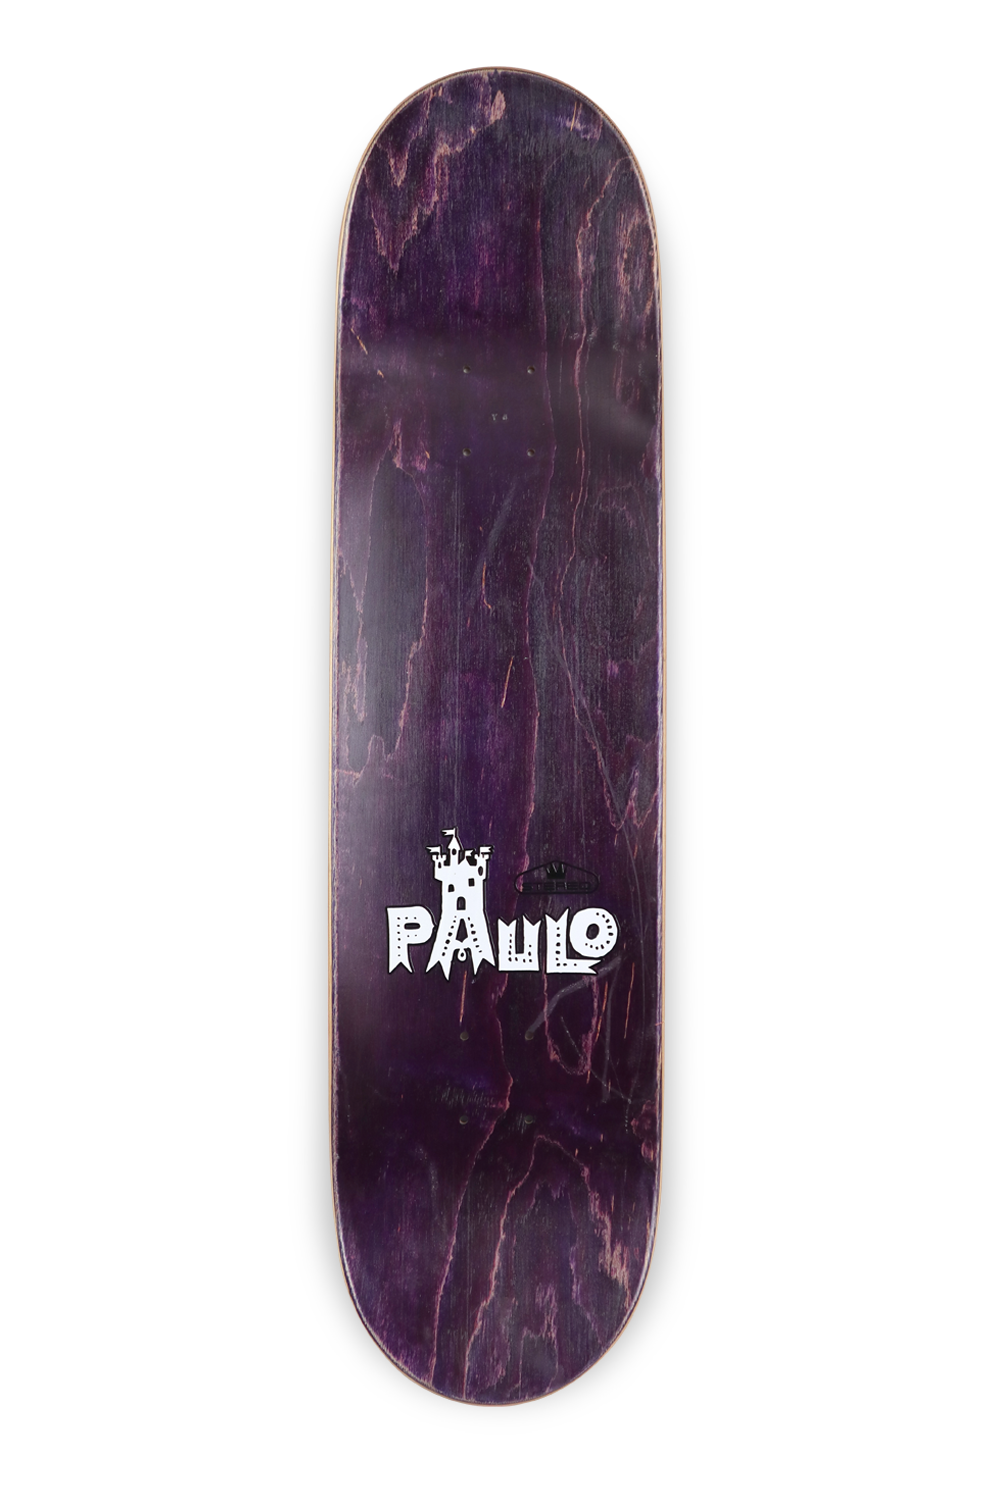 Stereo Paulo Diaz Camelot one-off 8.5